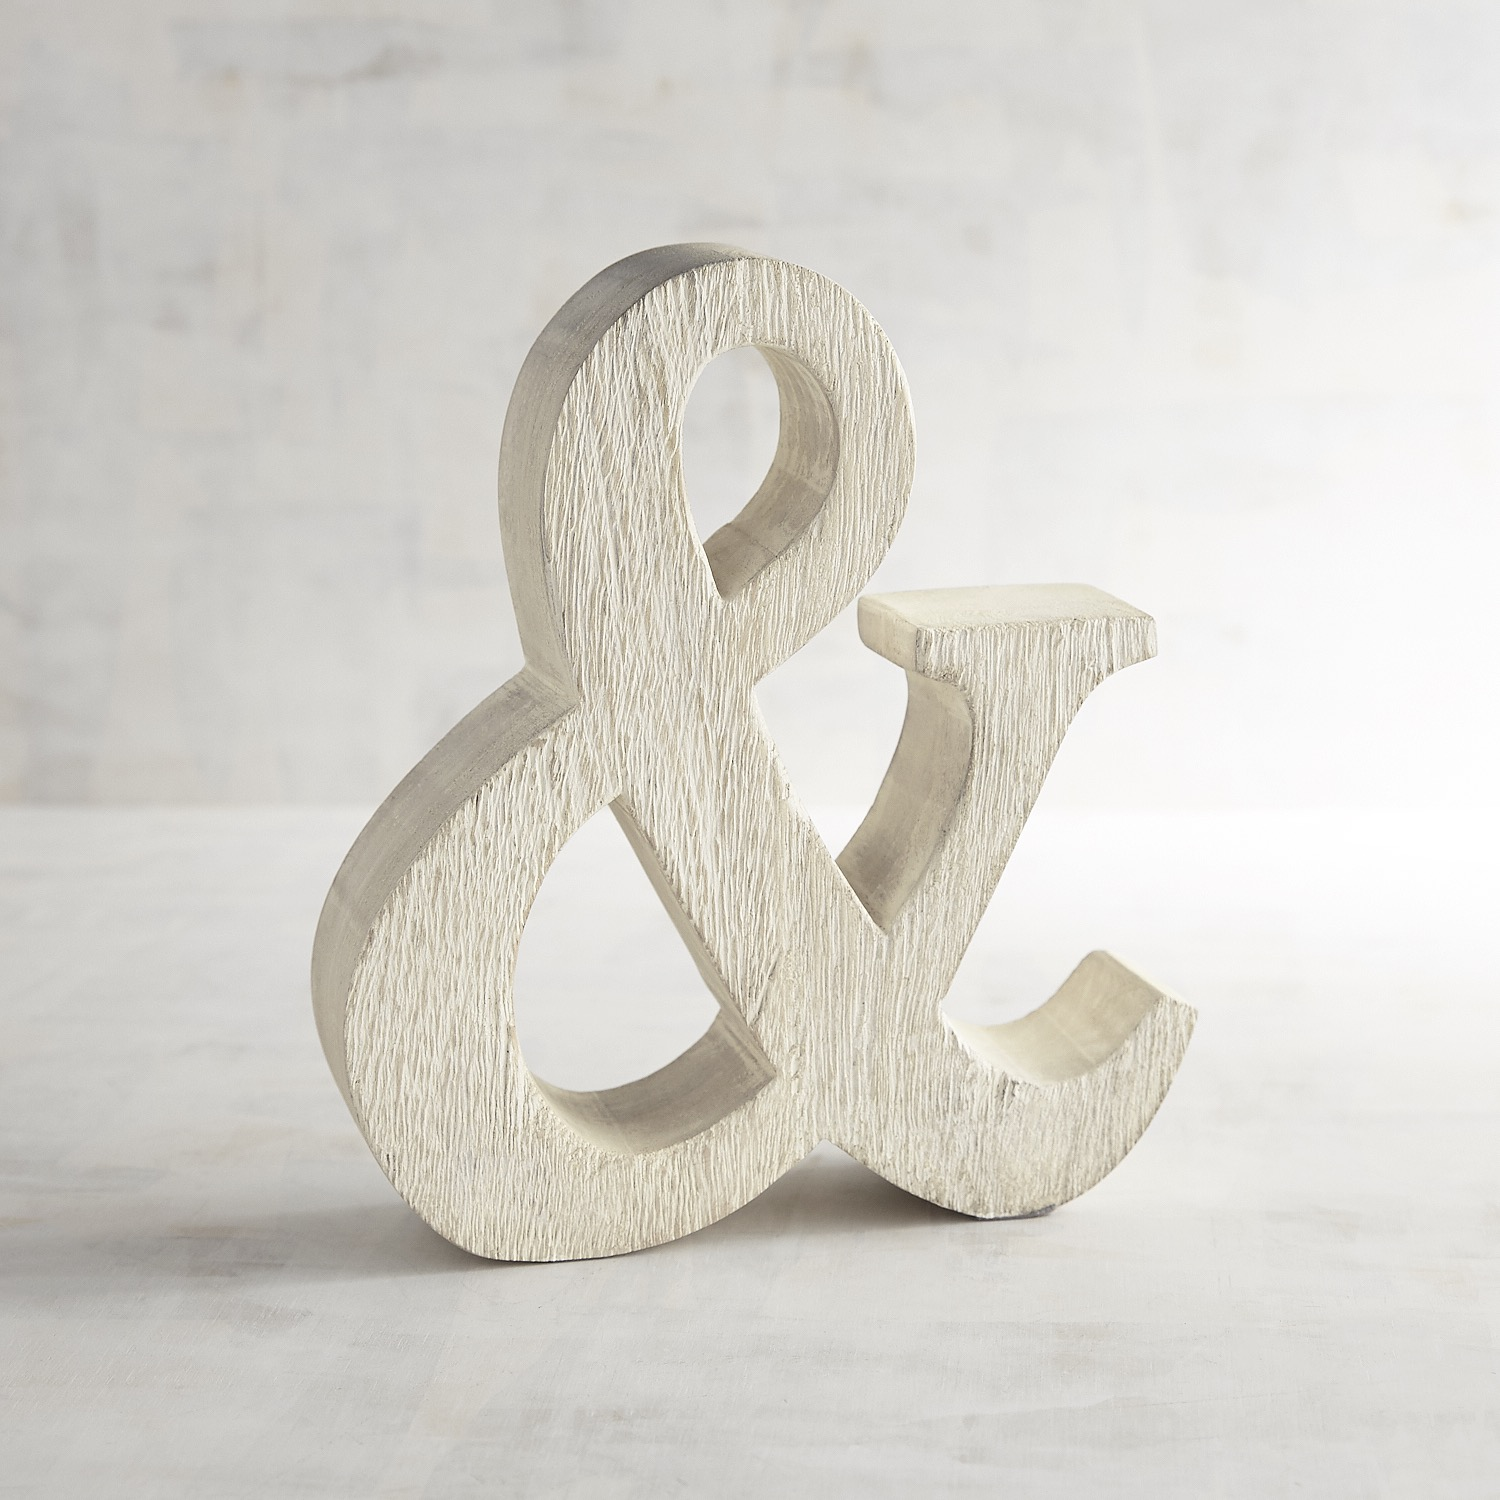 Whitewashed Wooden Monogram Ampersand